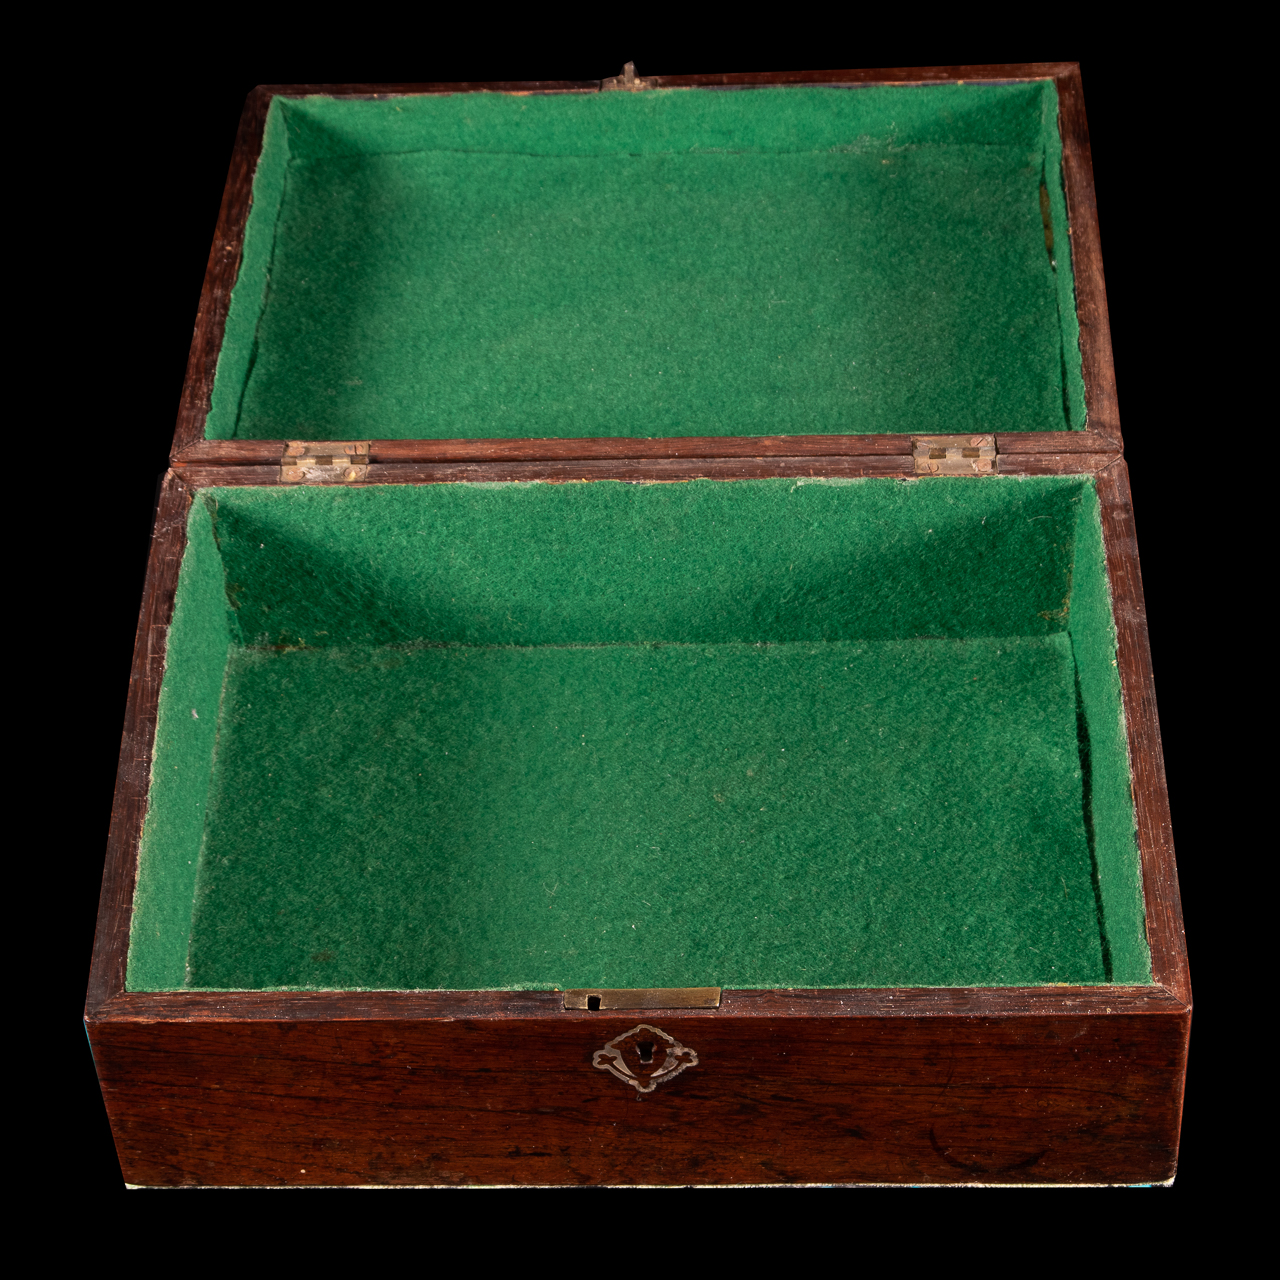 Jewellery Box with Mother of Pearl Inlay - Image 5 of 5